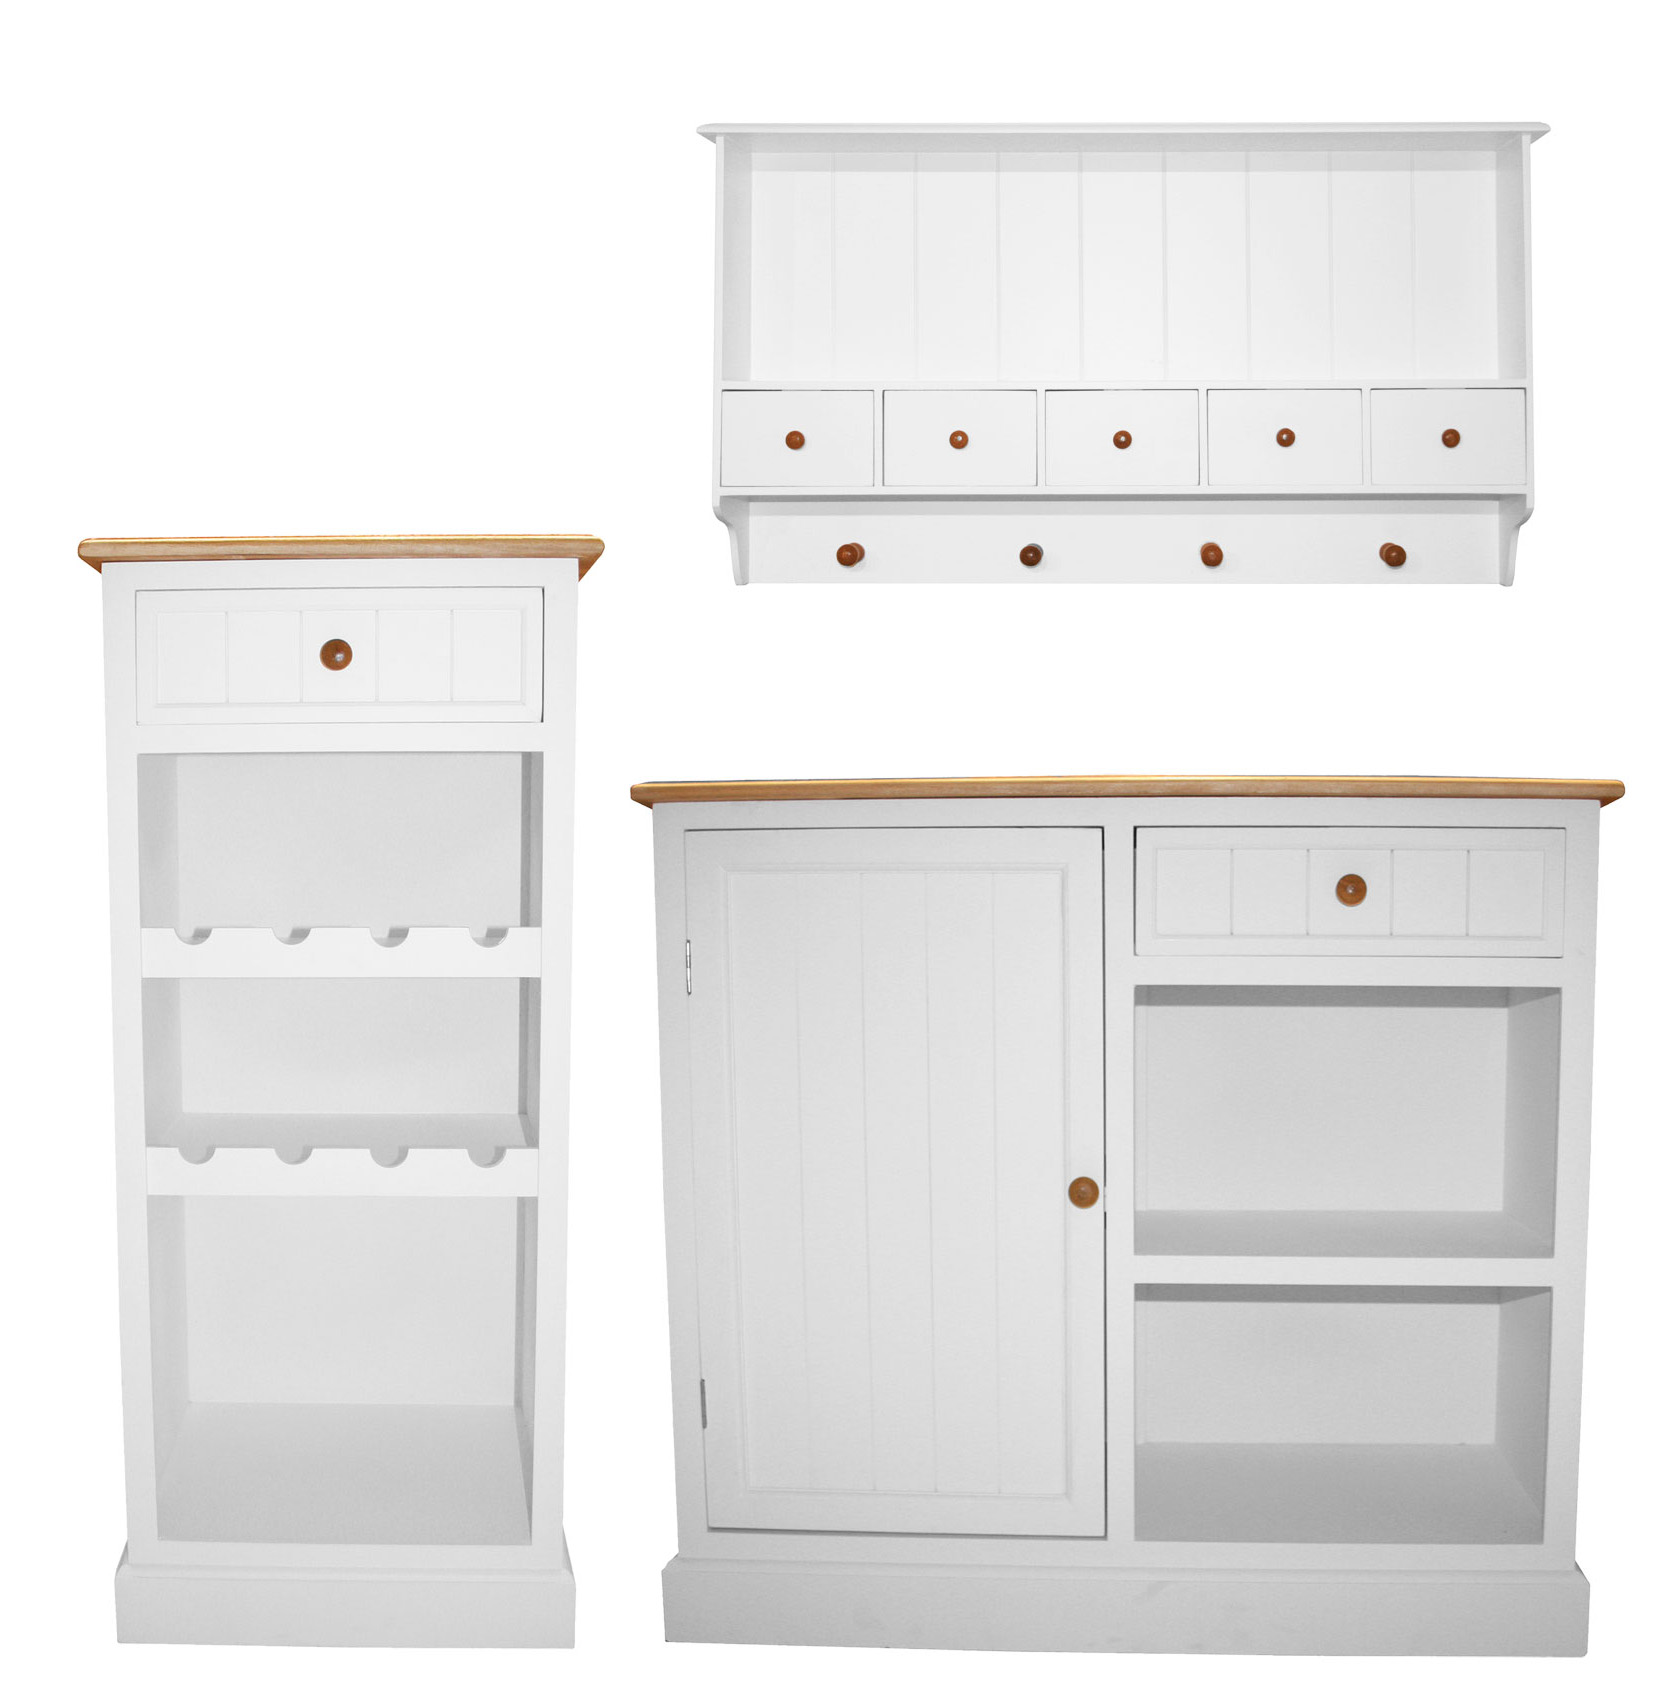 Charles bentley white traditional country kitchen wall for Kitchen cupboard wall unit